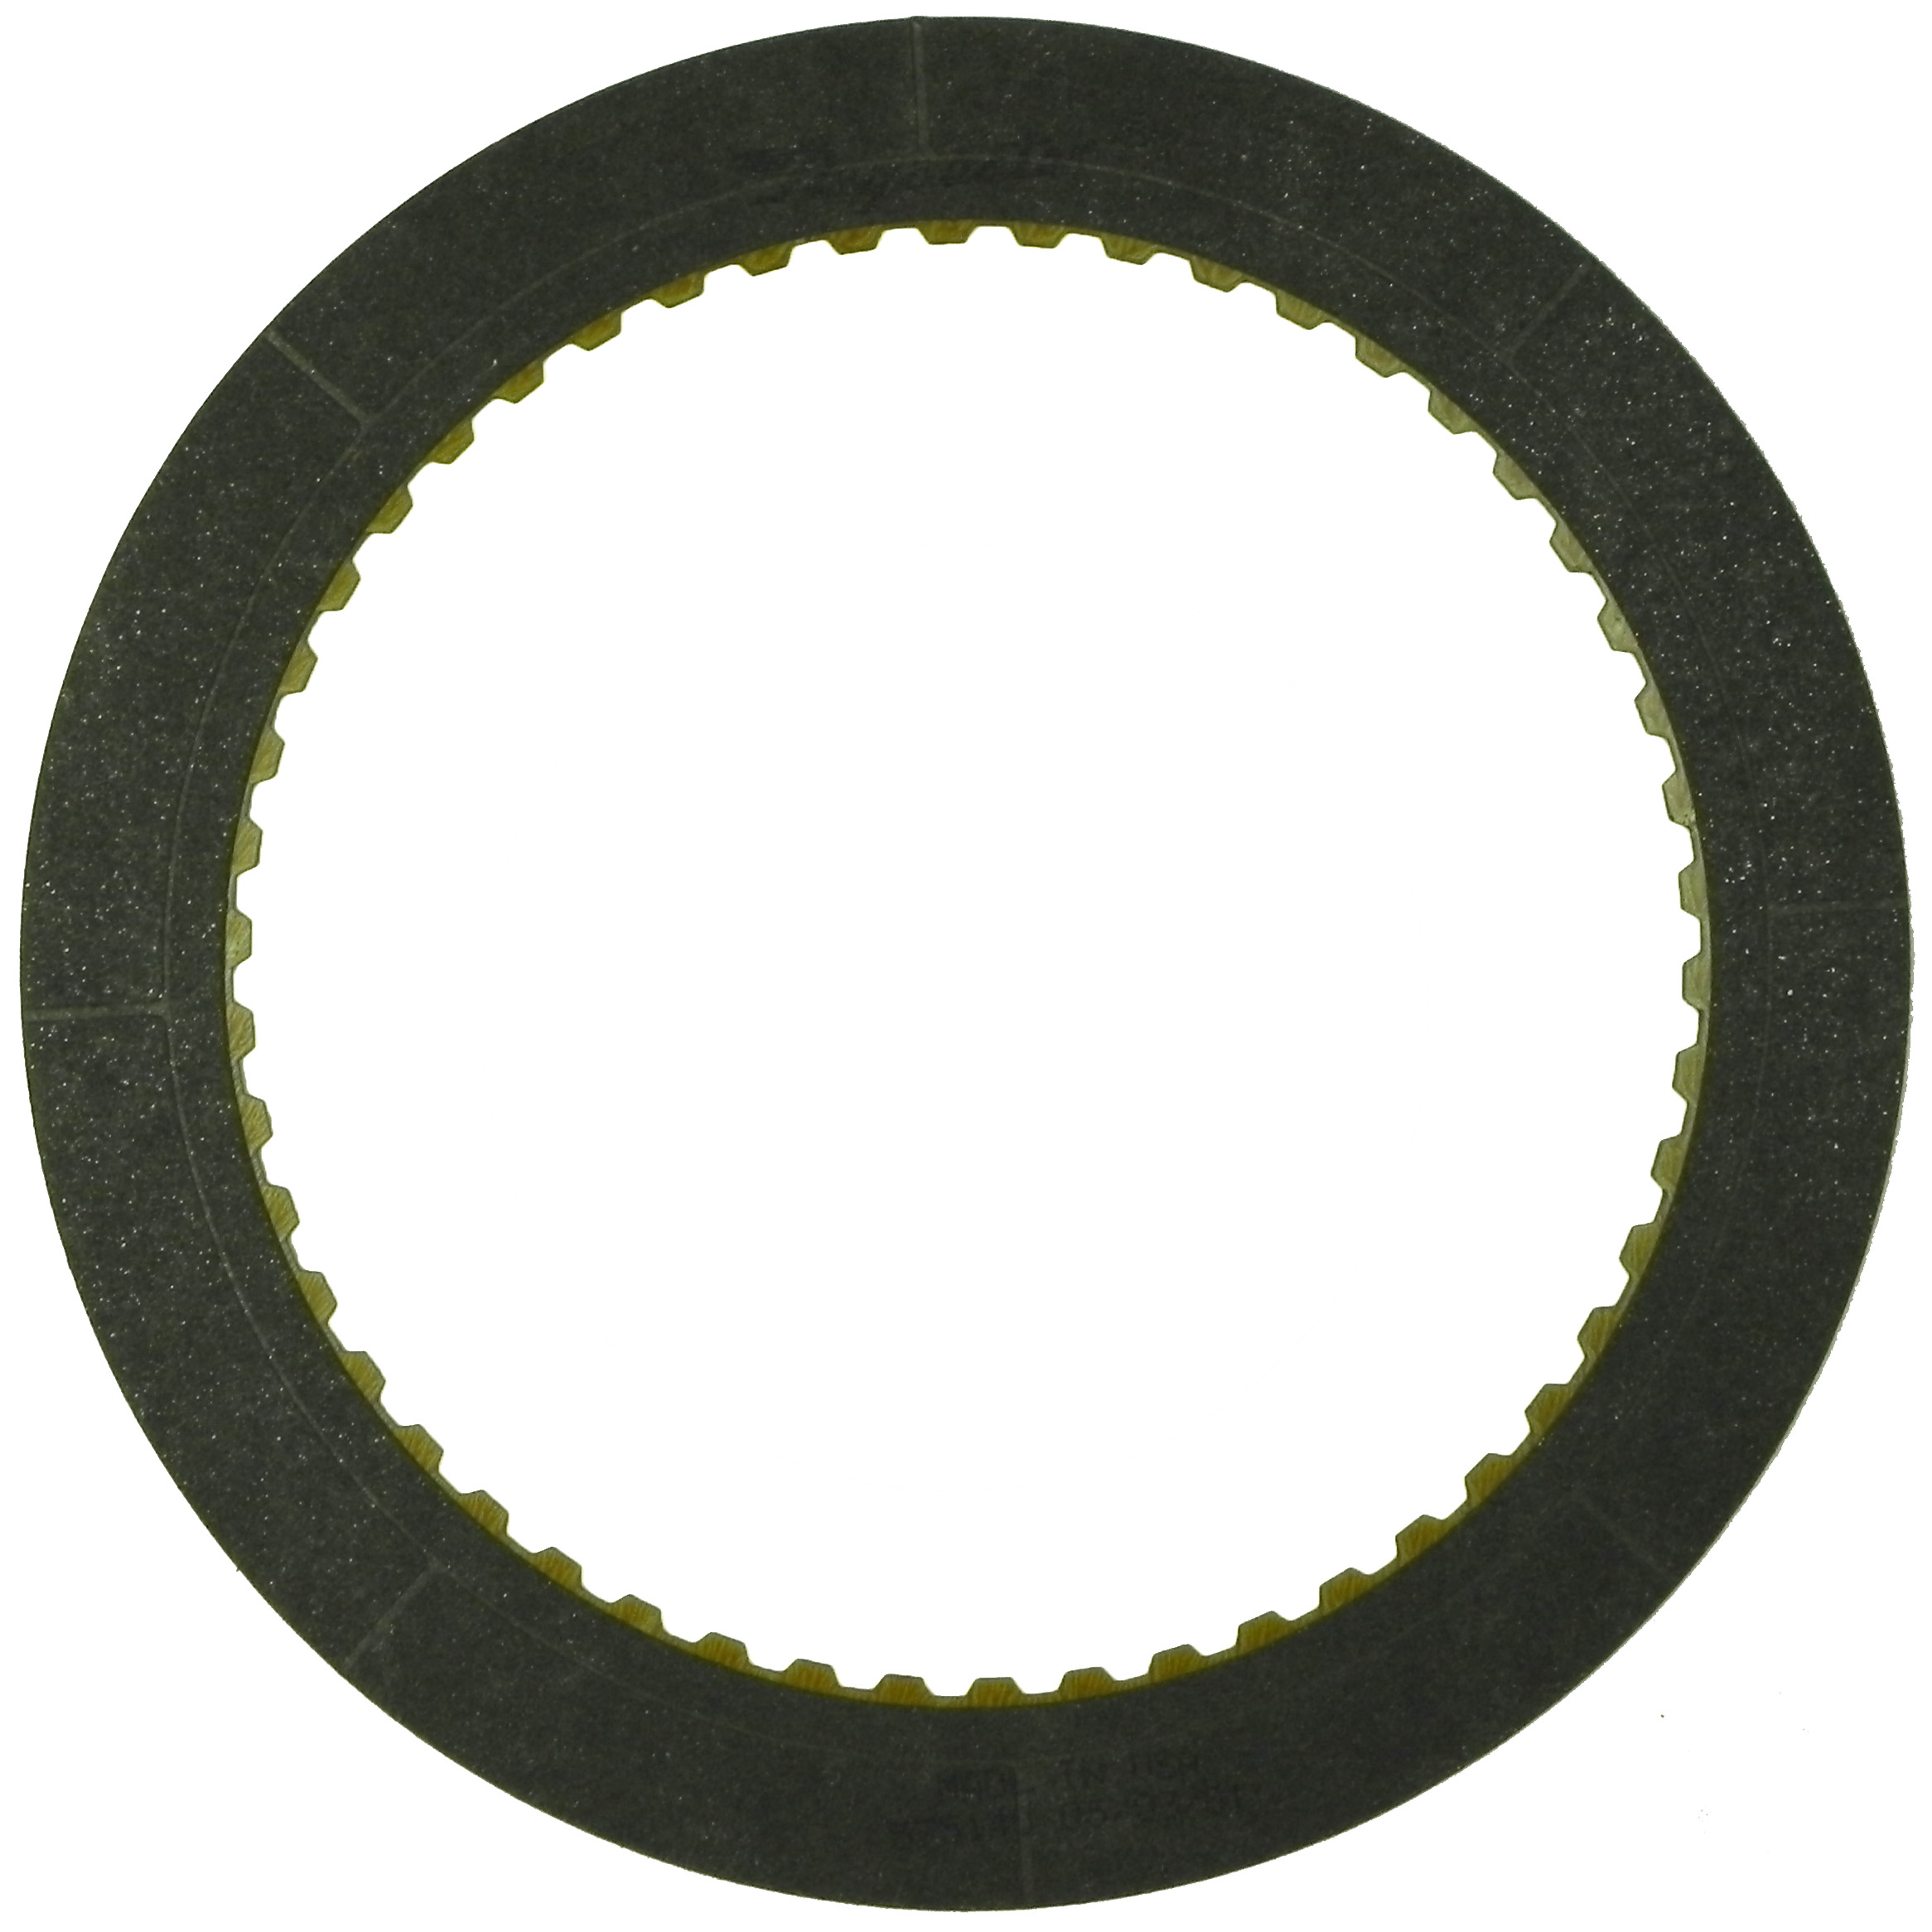 E4OD, 4R100 High Energy Friction Clutch Plate